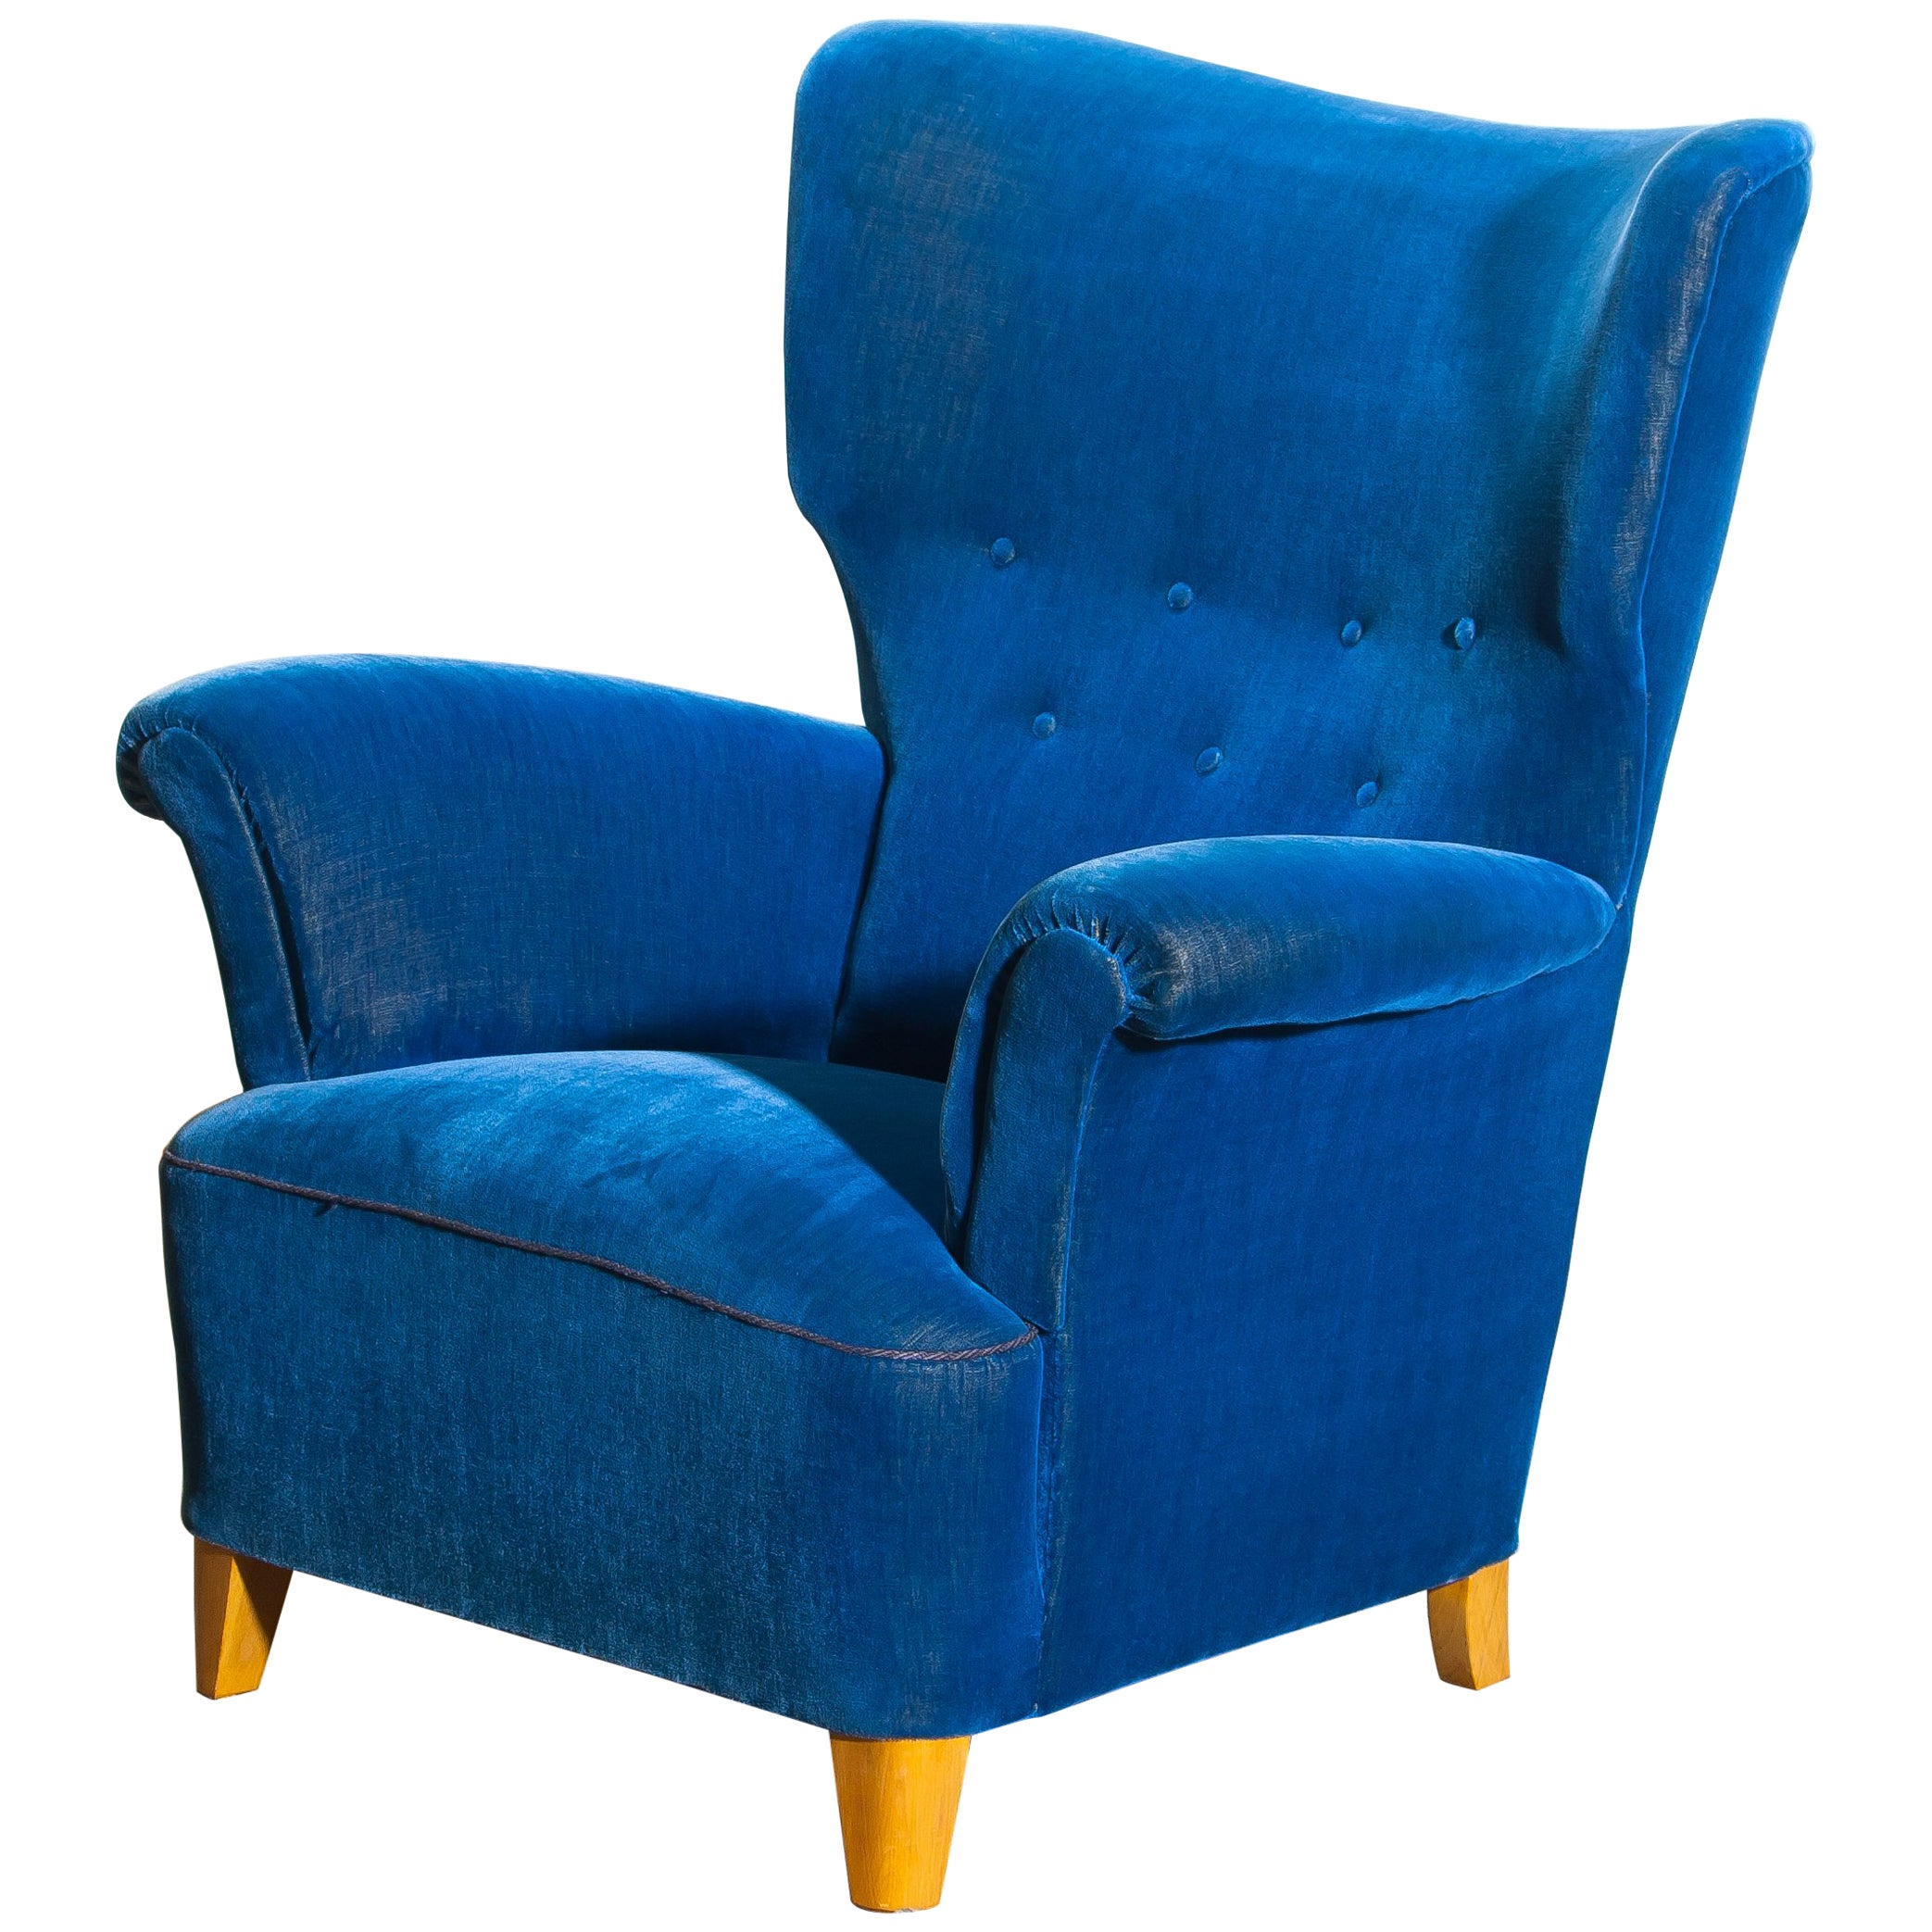 Royal Blue Chair Scandinavian Royal Blue Velvet Wingback Chair 1930 1940